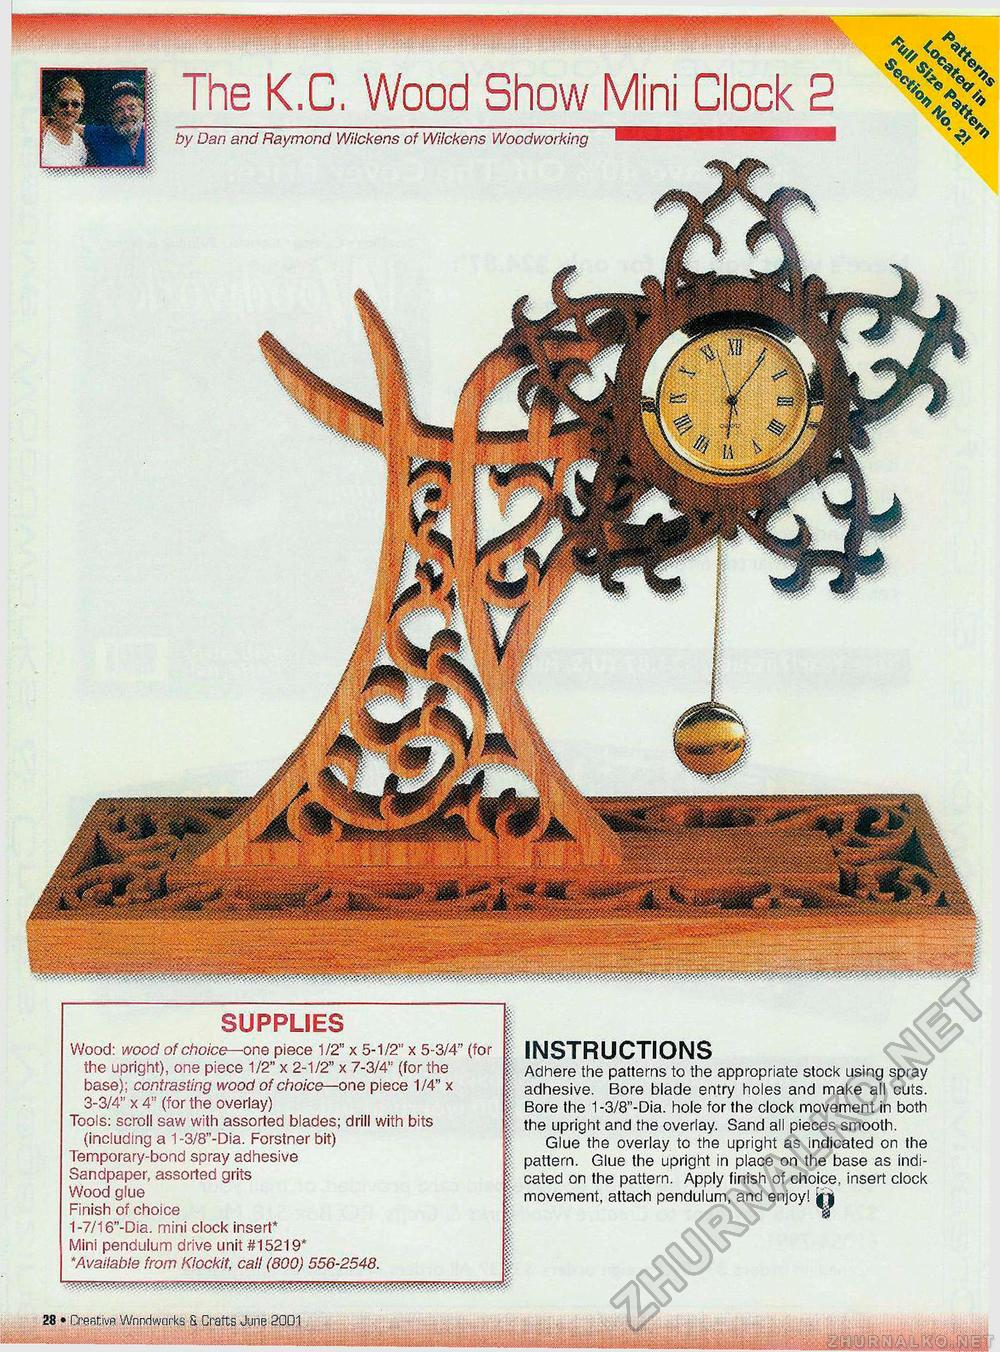 Creative Woodworks & crafts 2001-06, страница 28